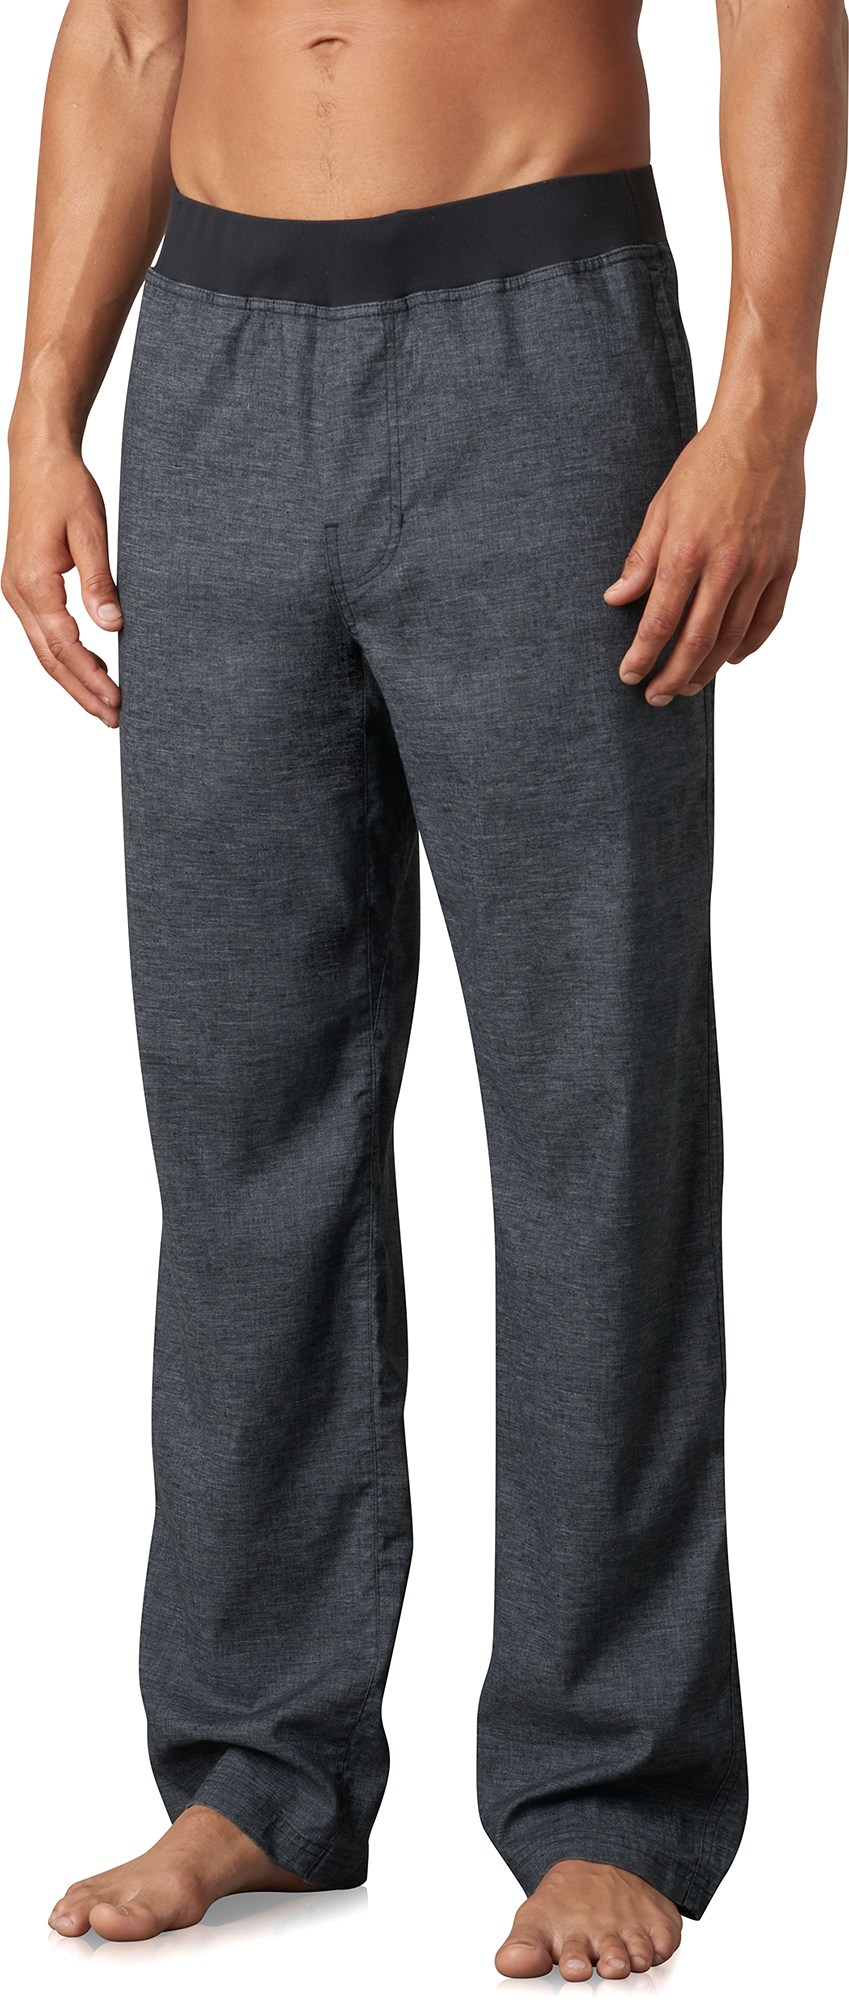 prAna Vaha Pants - Men's 30